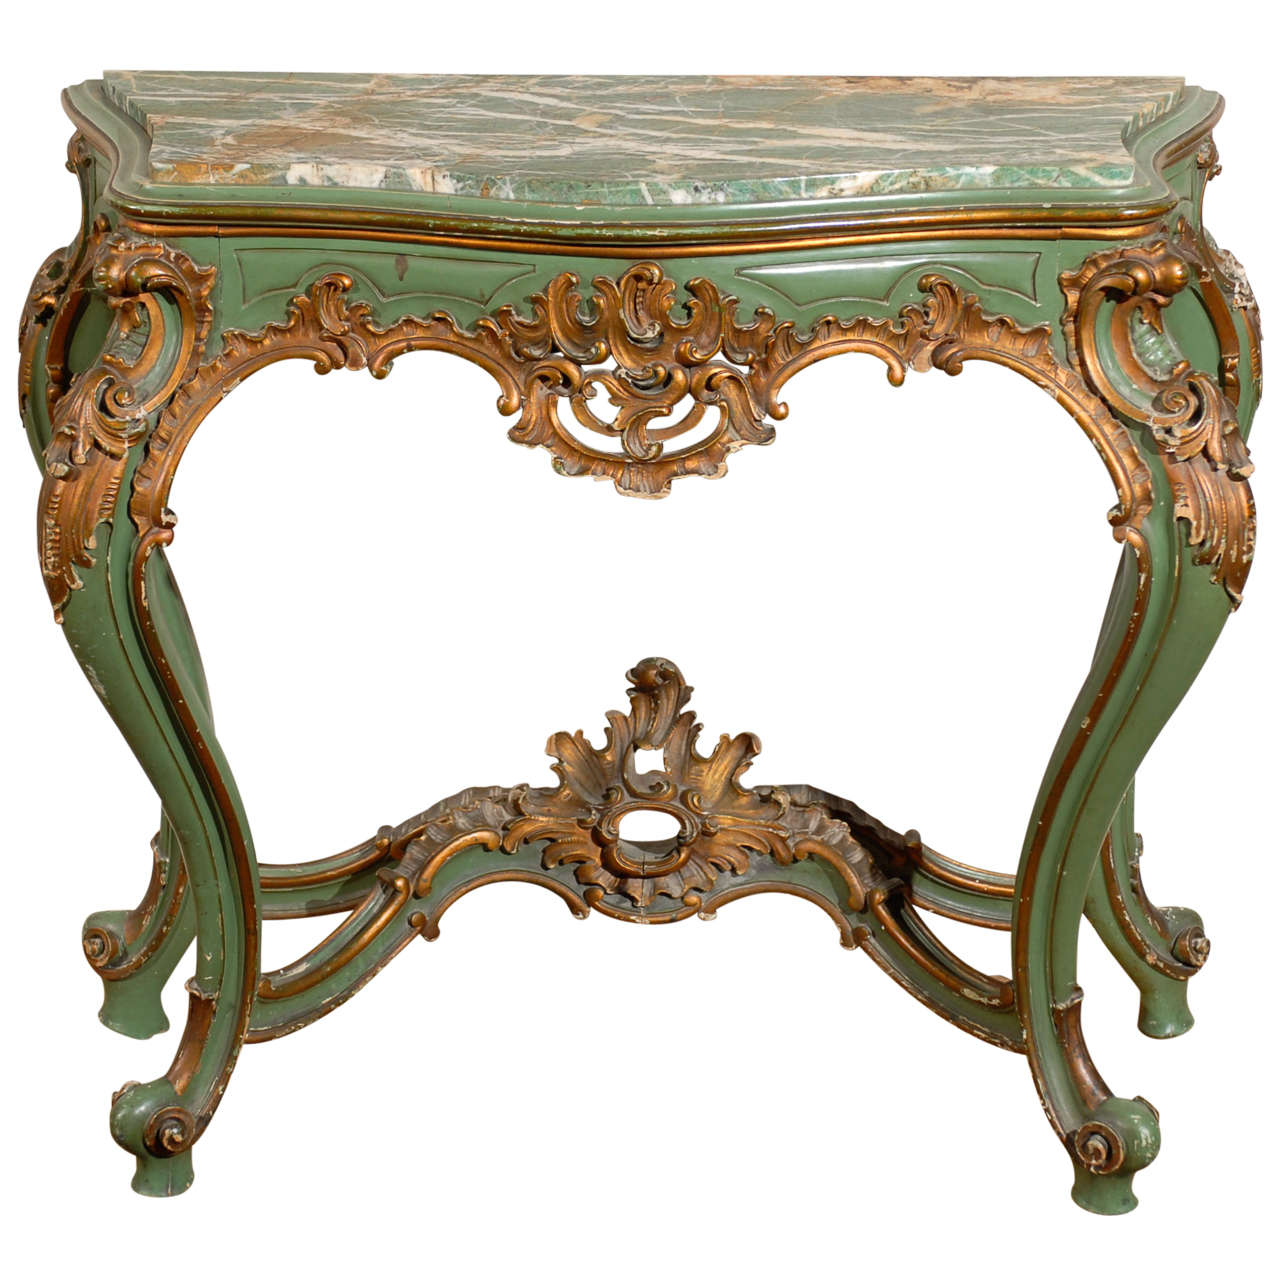 Louis xv style console at 1stdibs - Mobilier style louis xv ...